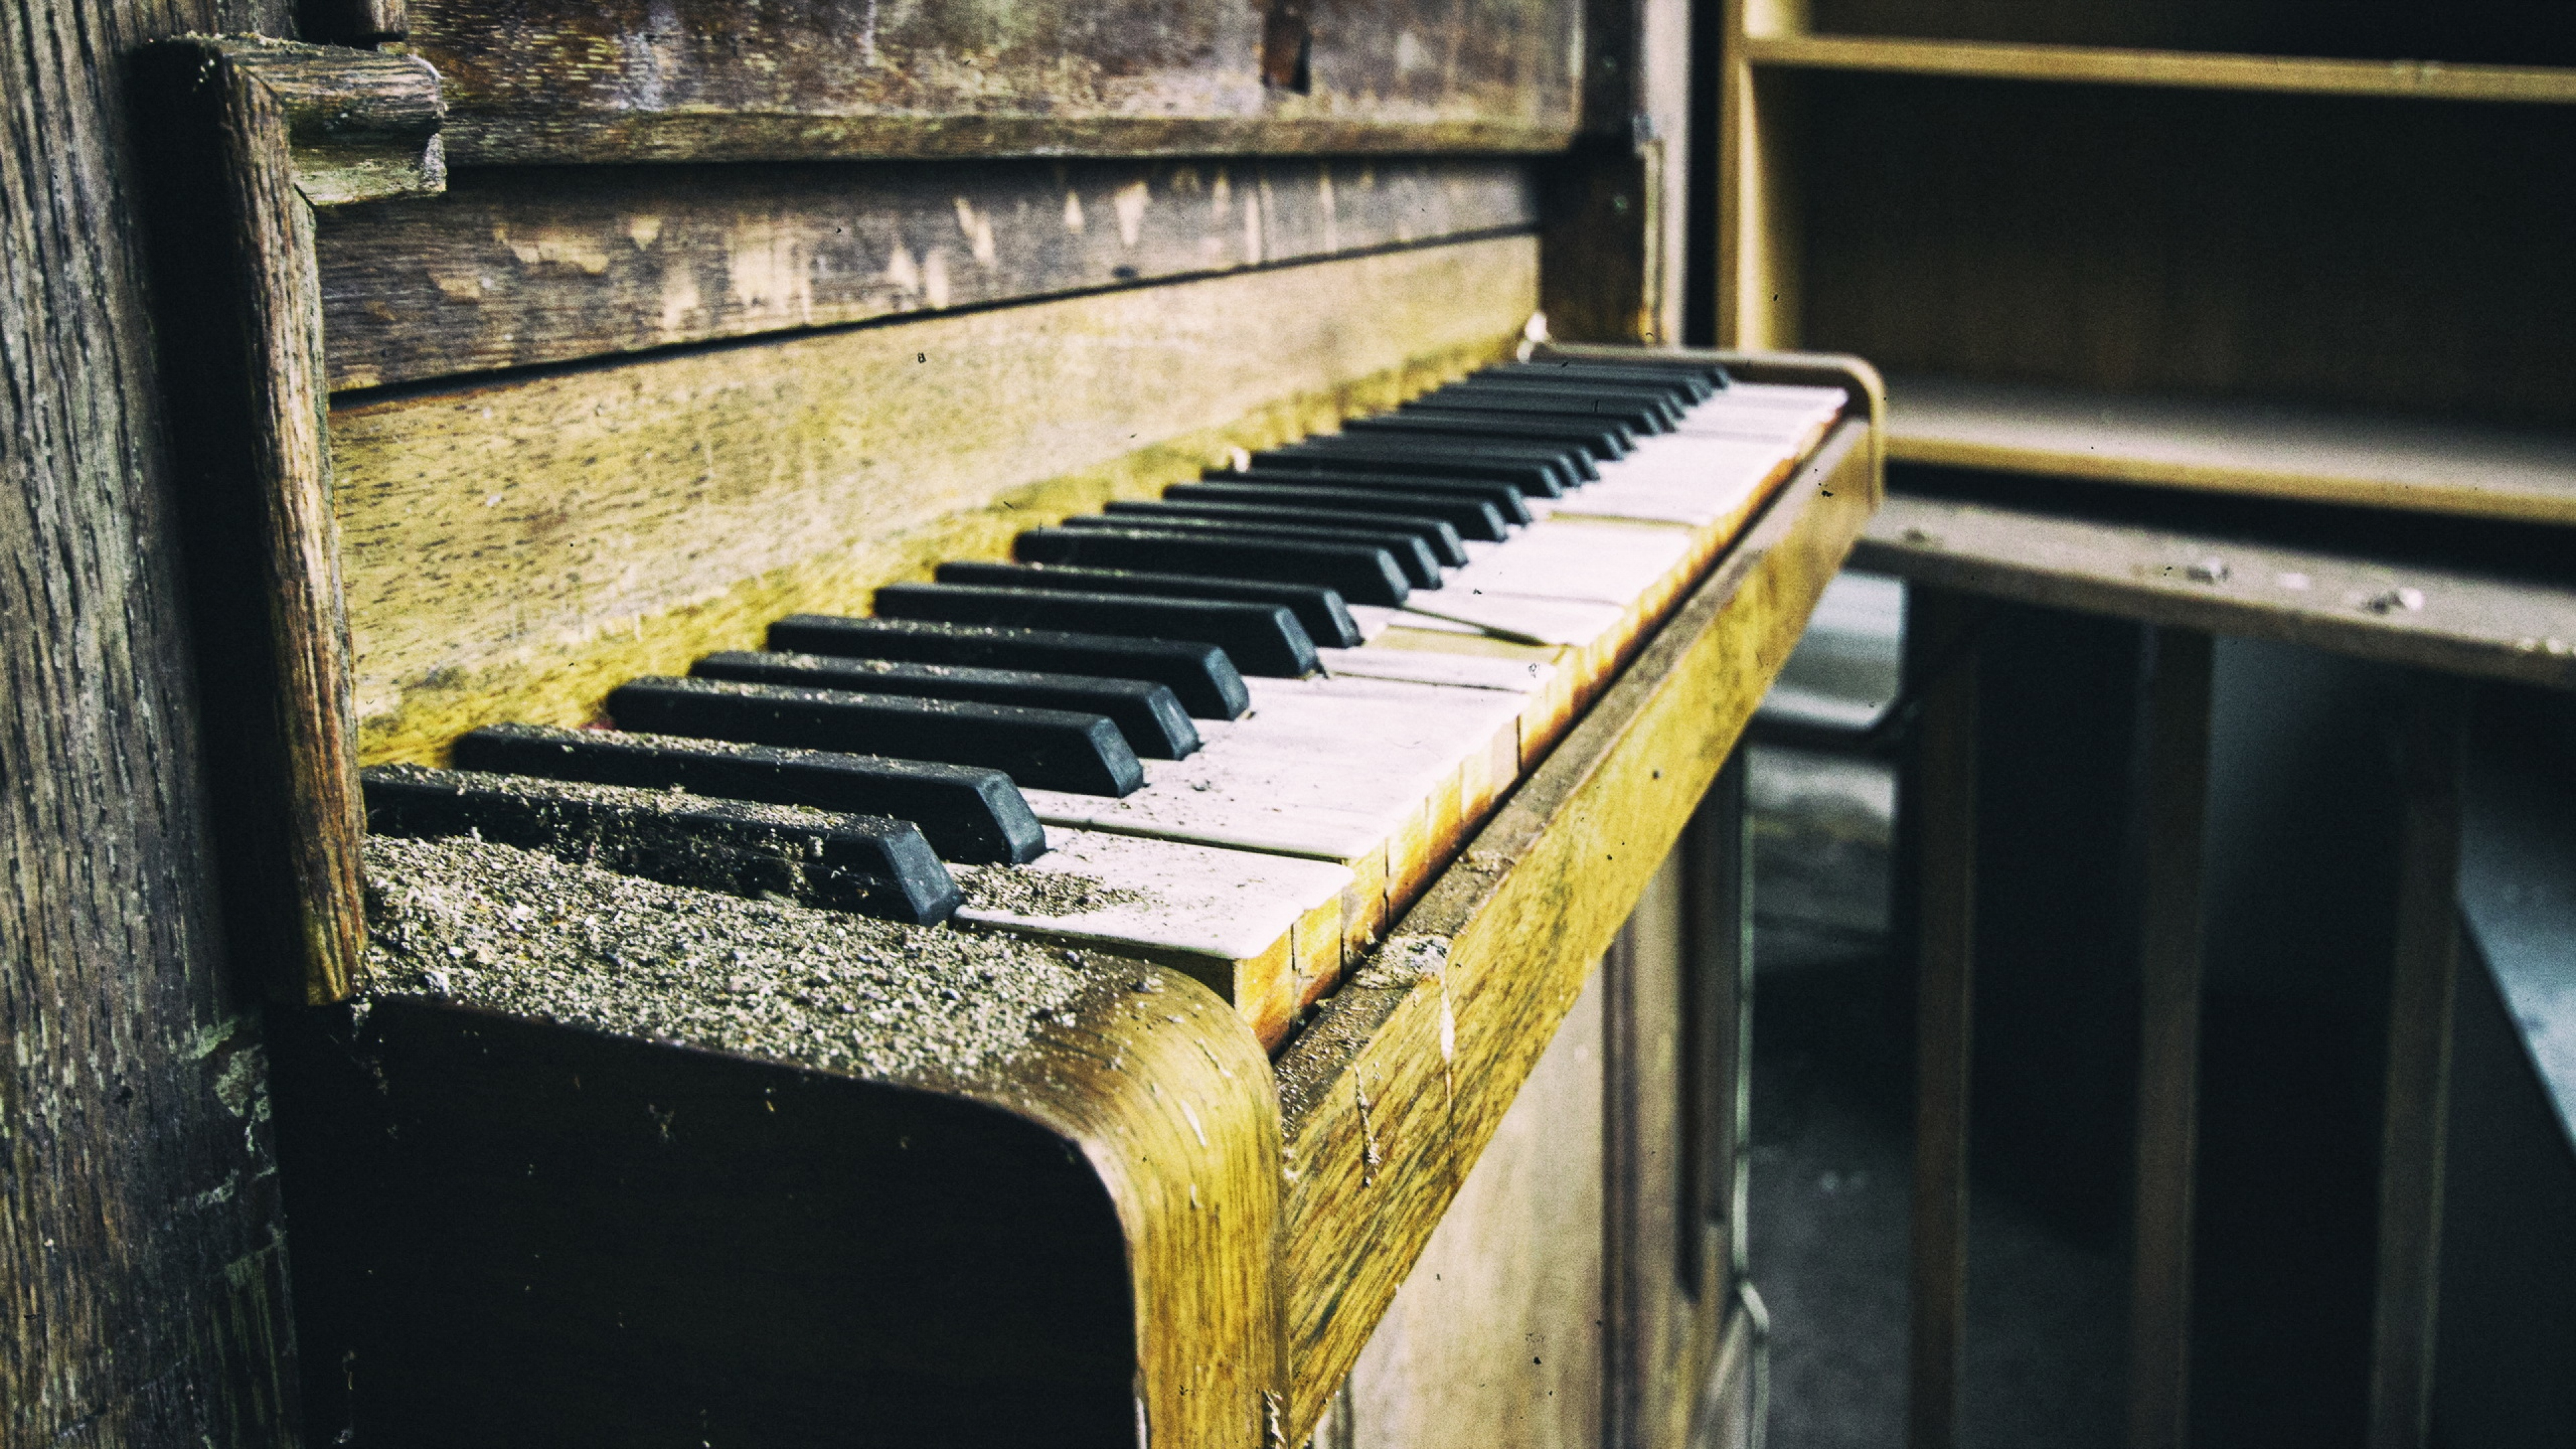 Old Piano Wallpaper 4k 3840x2160 Download Hd Wallpaper Wallpapertip